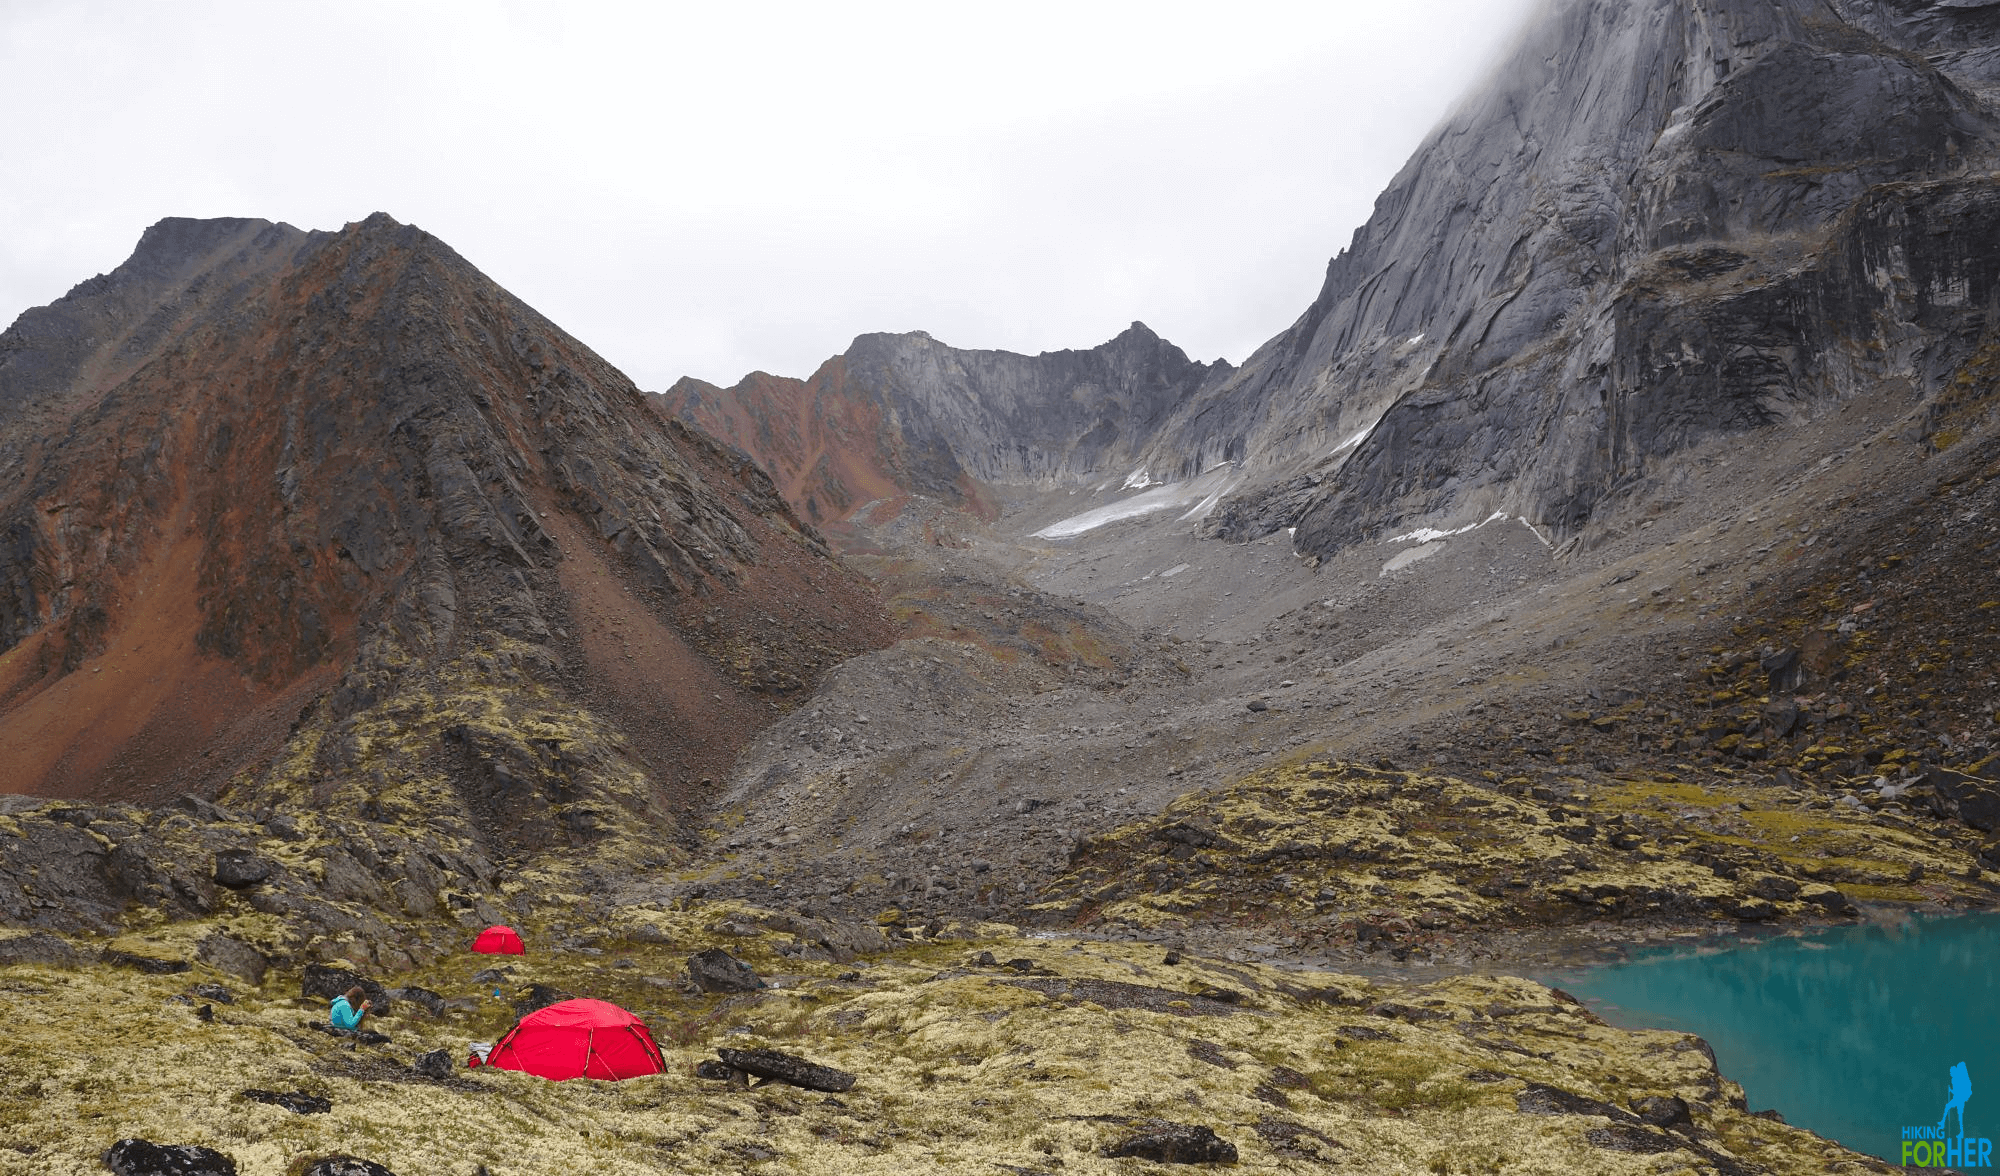 Backcountry wilderness camp with 2 red tents and a brilliant blue lake surrounded by dark towering mountains